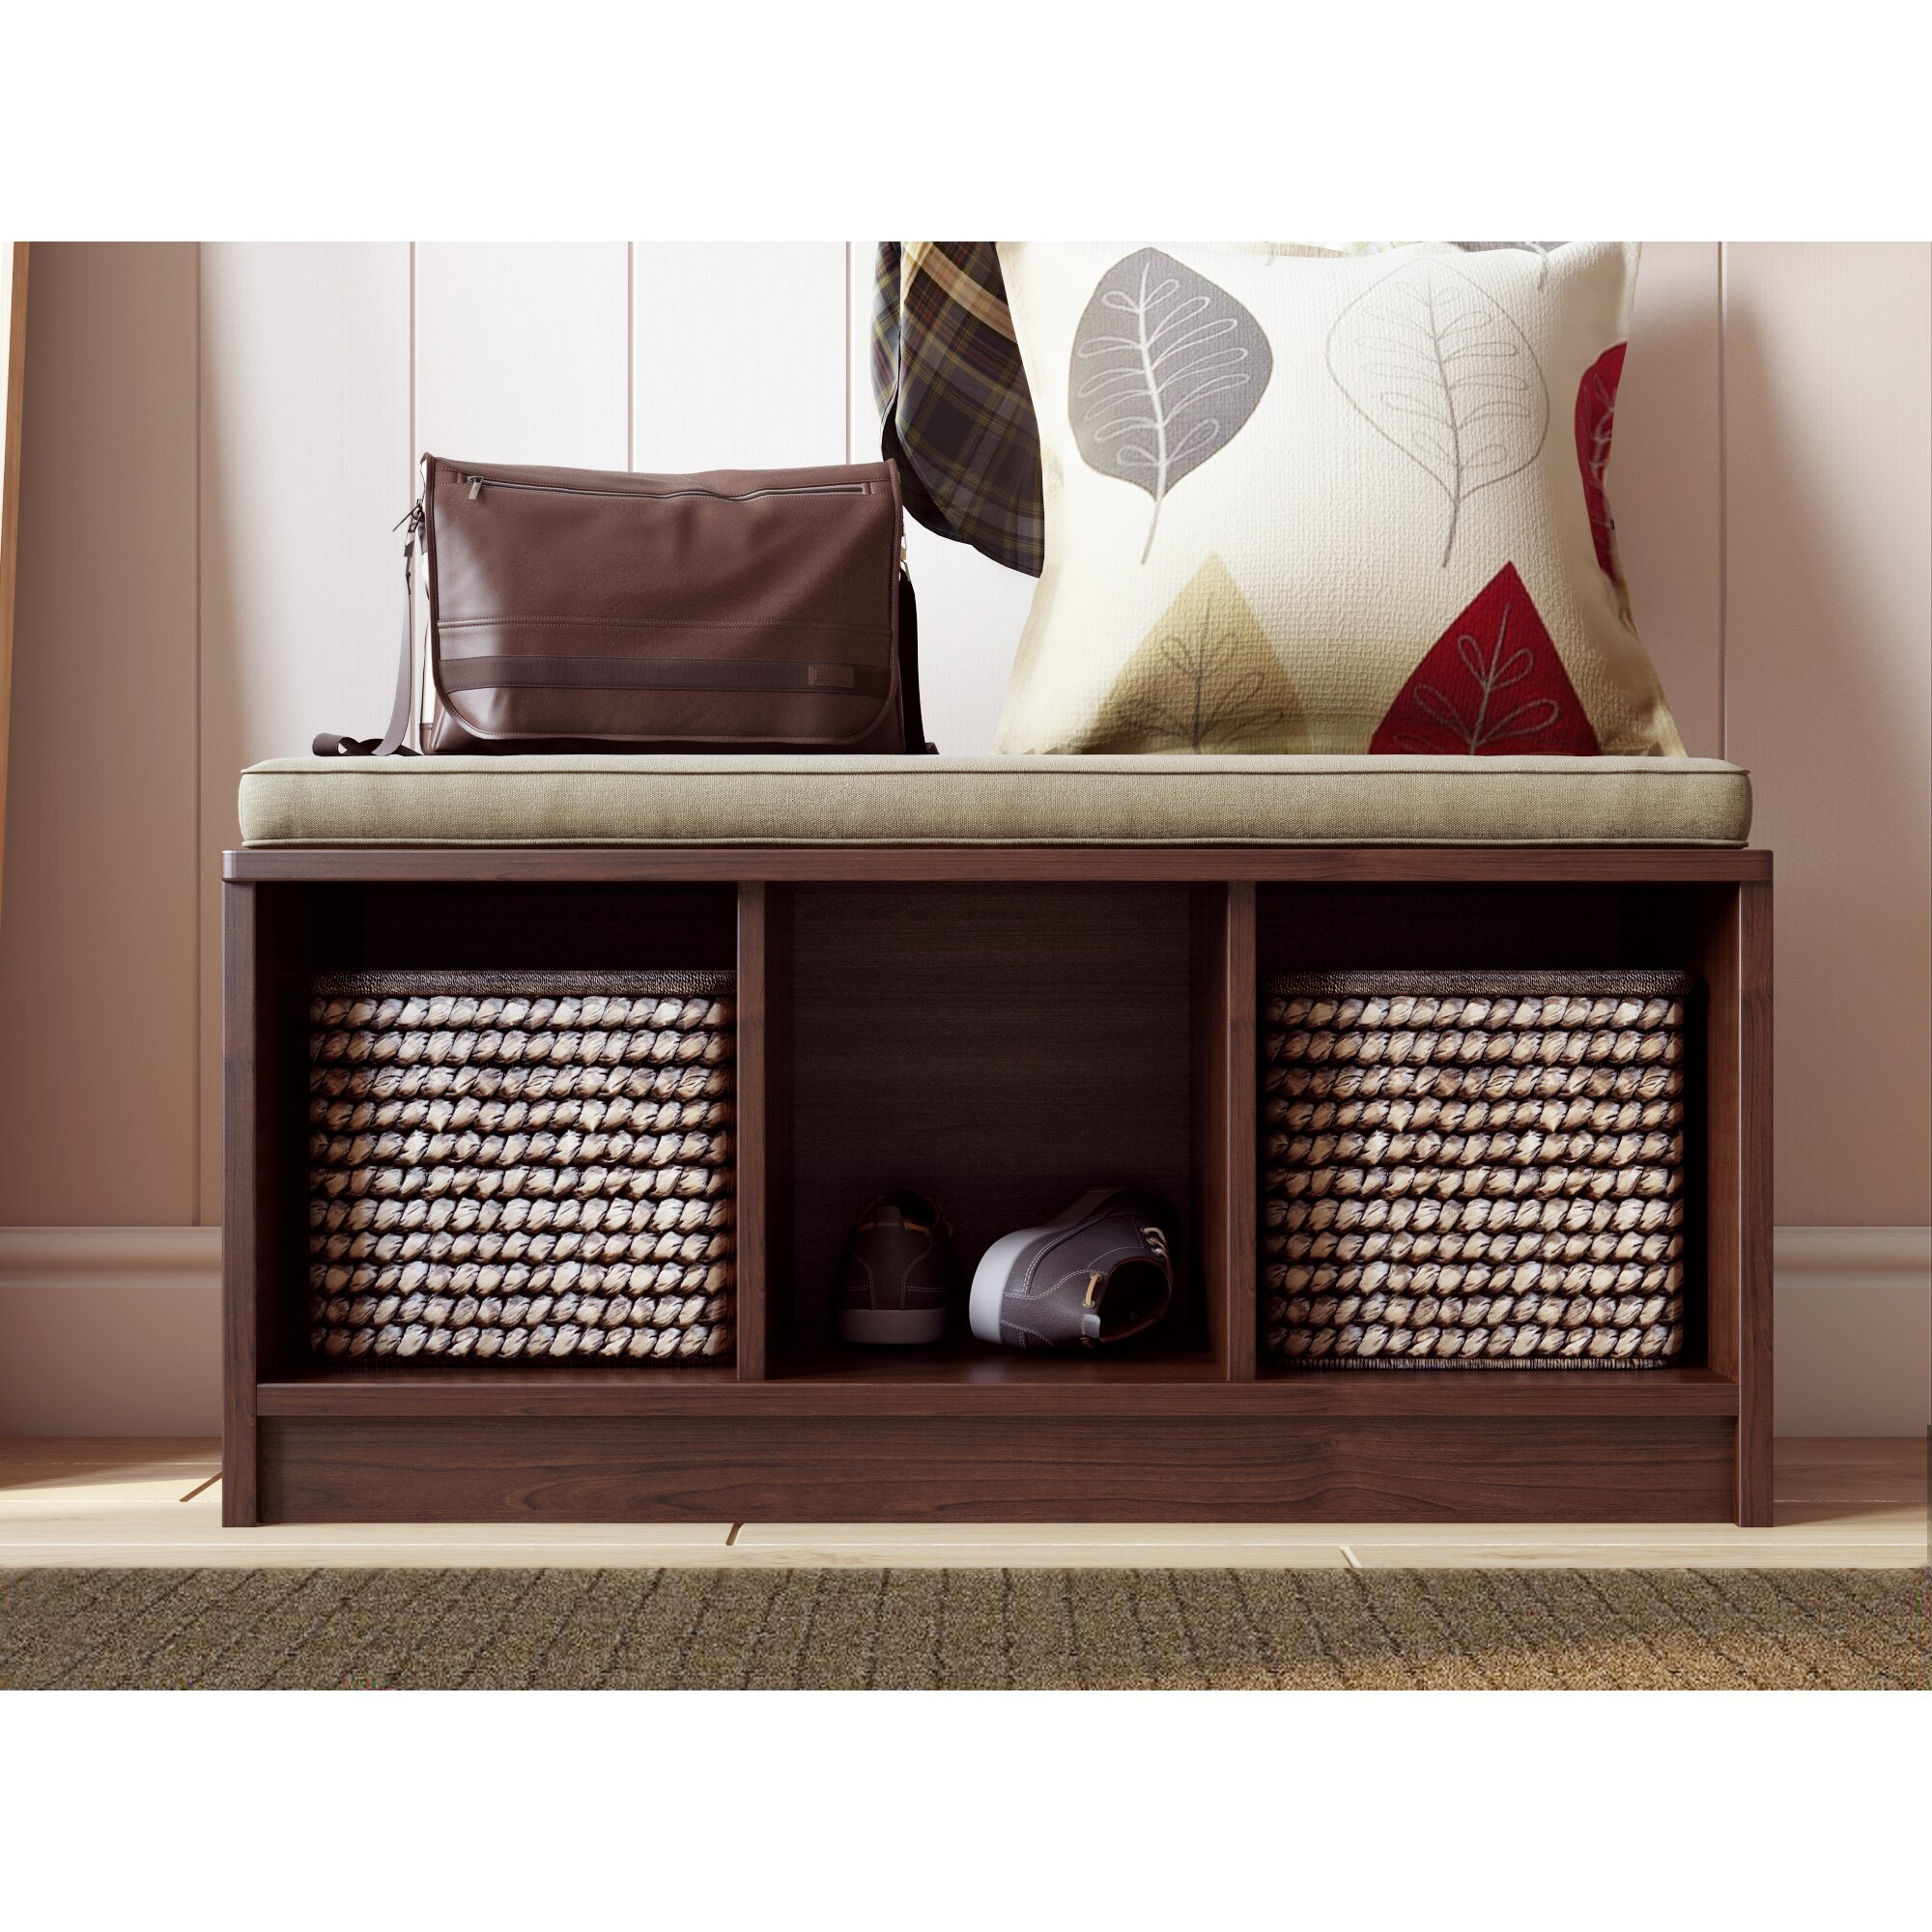 Andover Mills Ravenwood Upholstered Storage Bench: Andover Mills Wayside Wood Storage Hallway Bench & Reviews